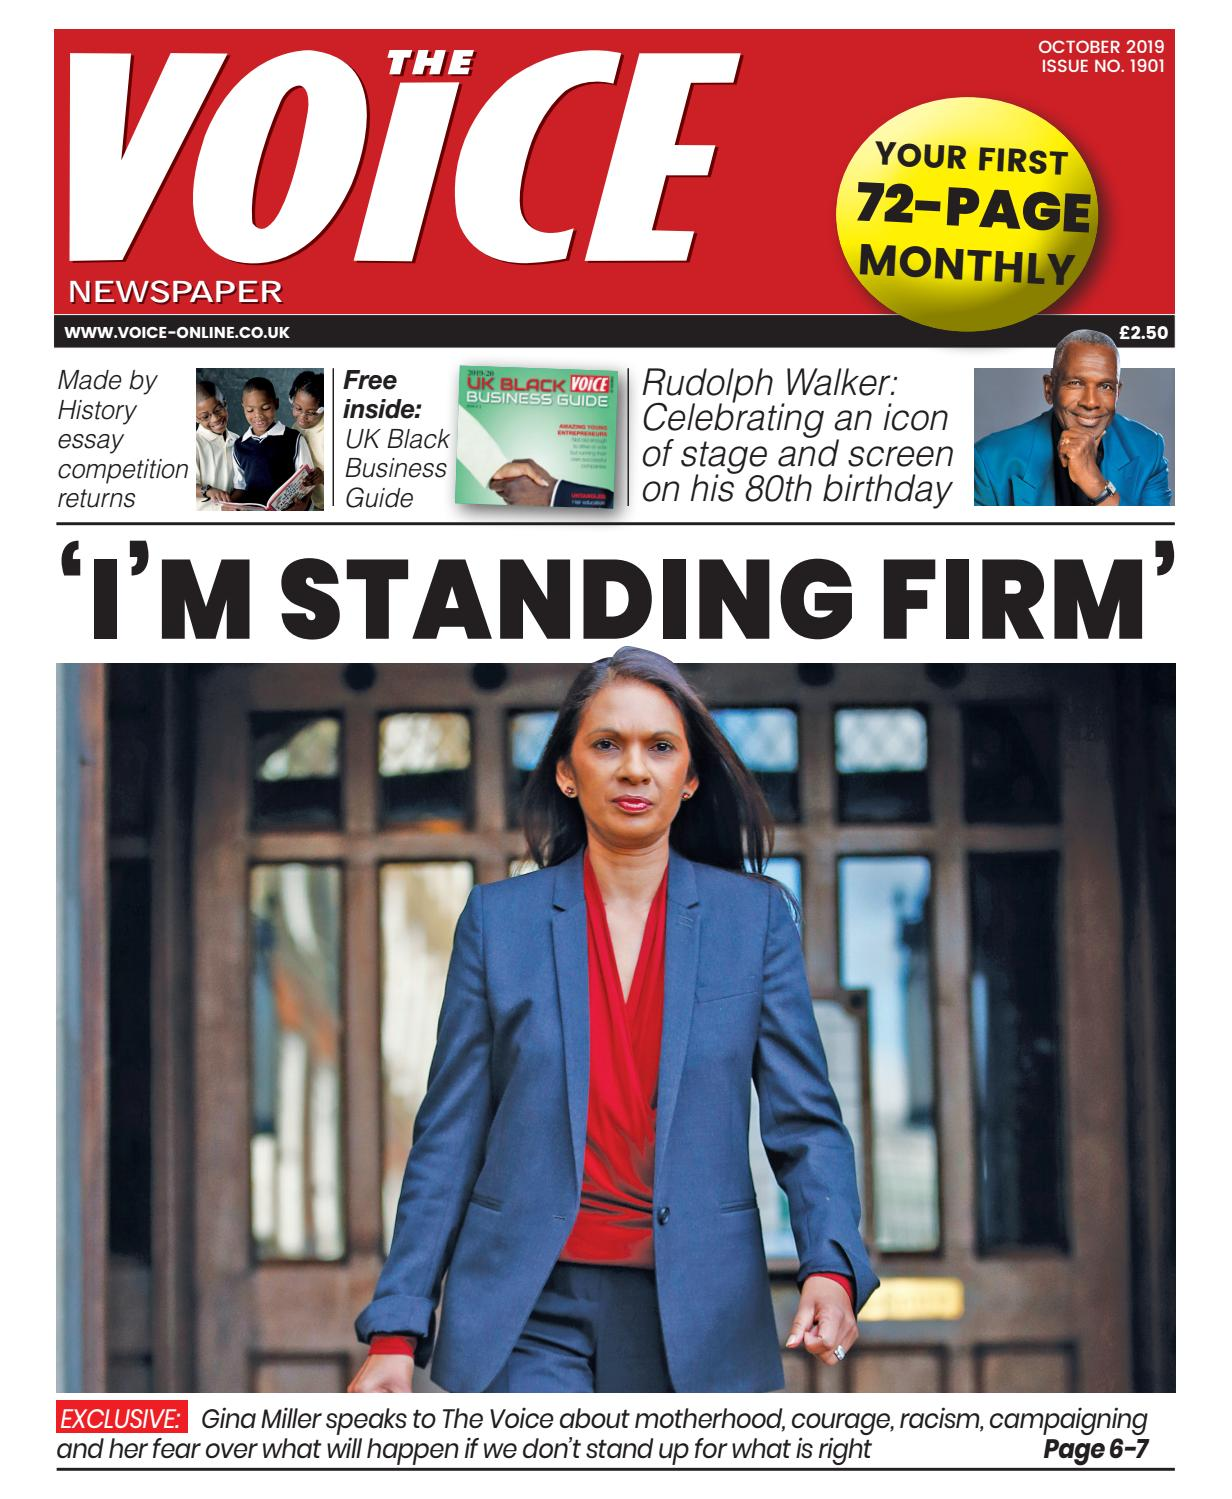 The Voice Newspaper October Issue by thevoicemediagroup - issuu